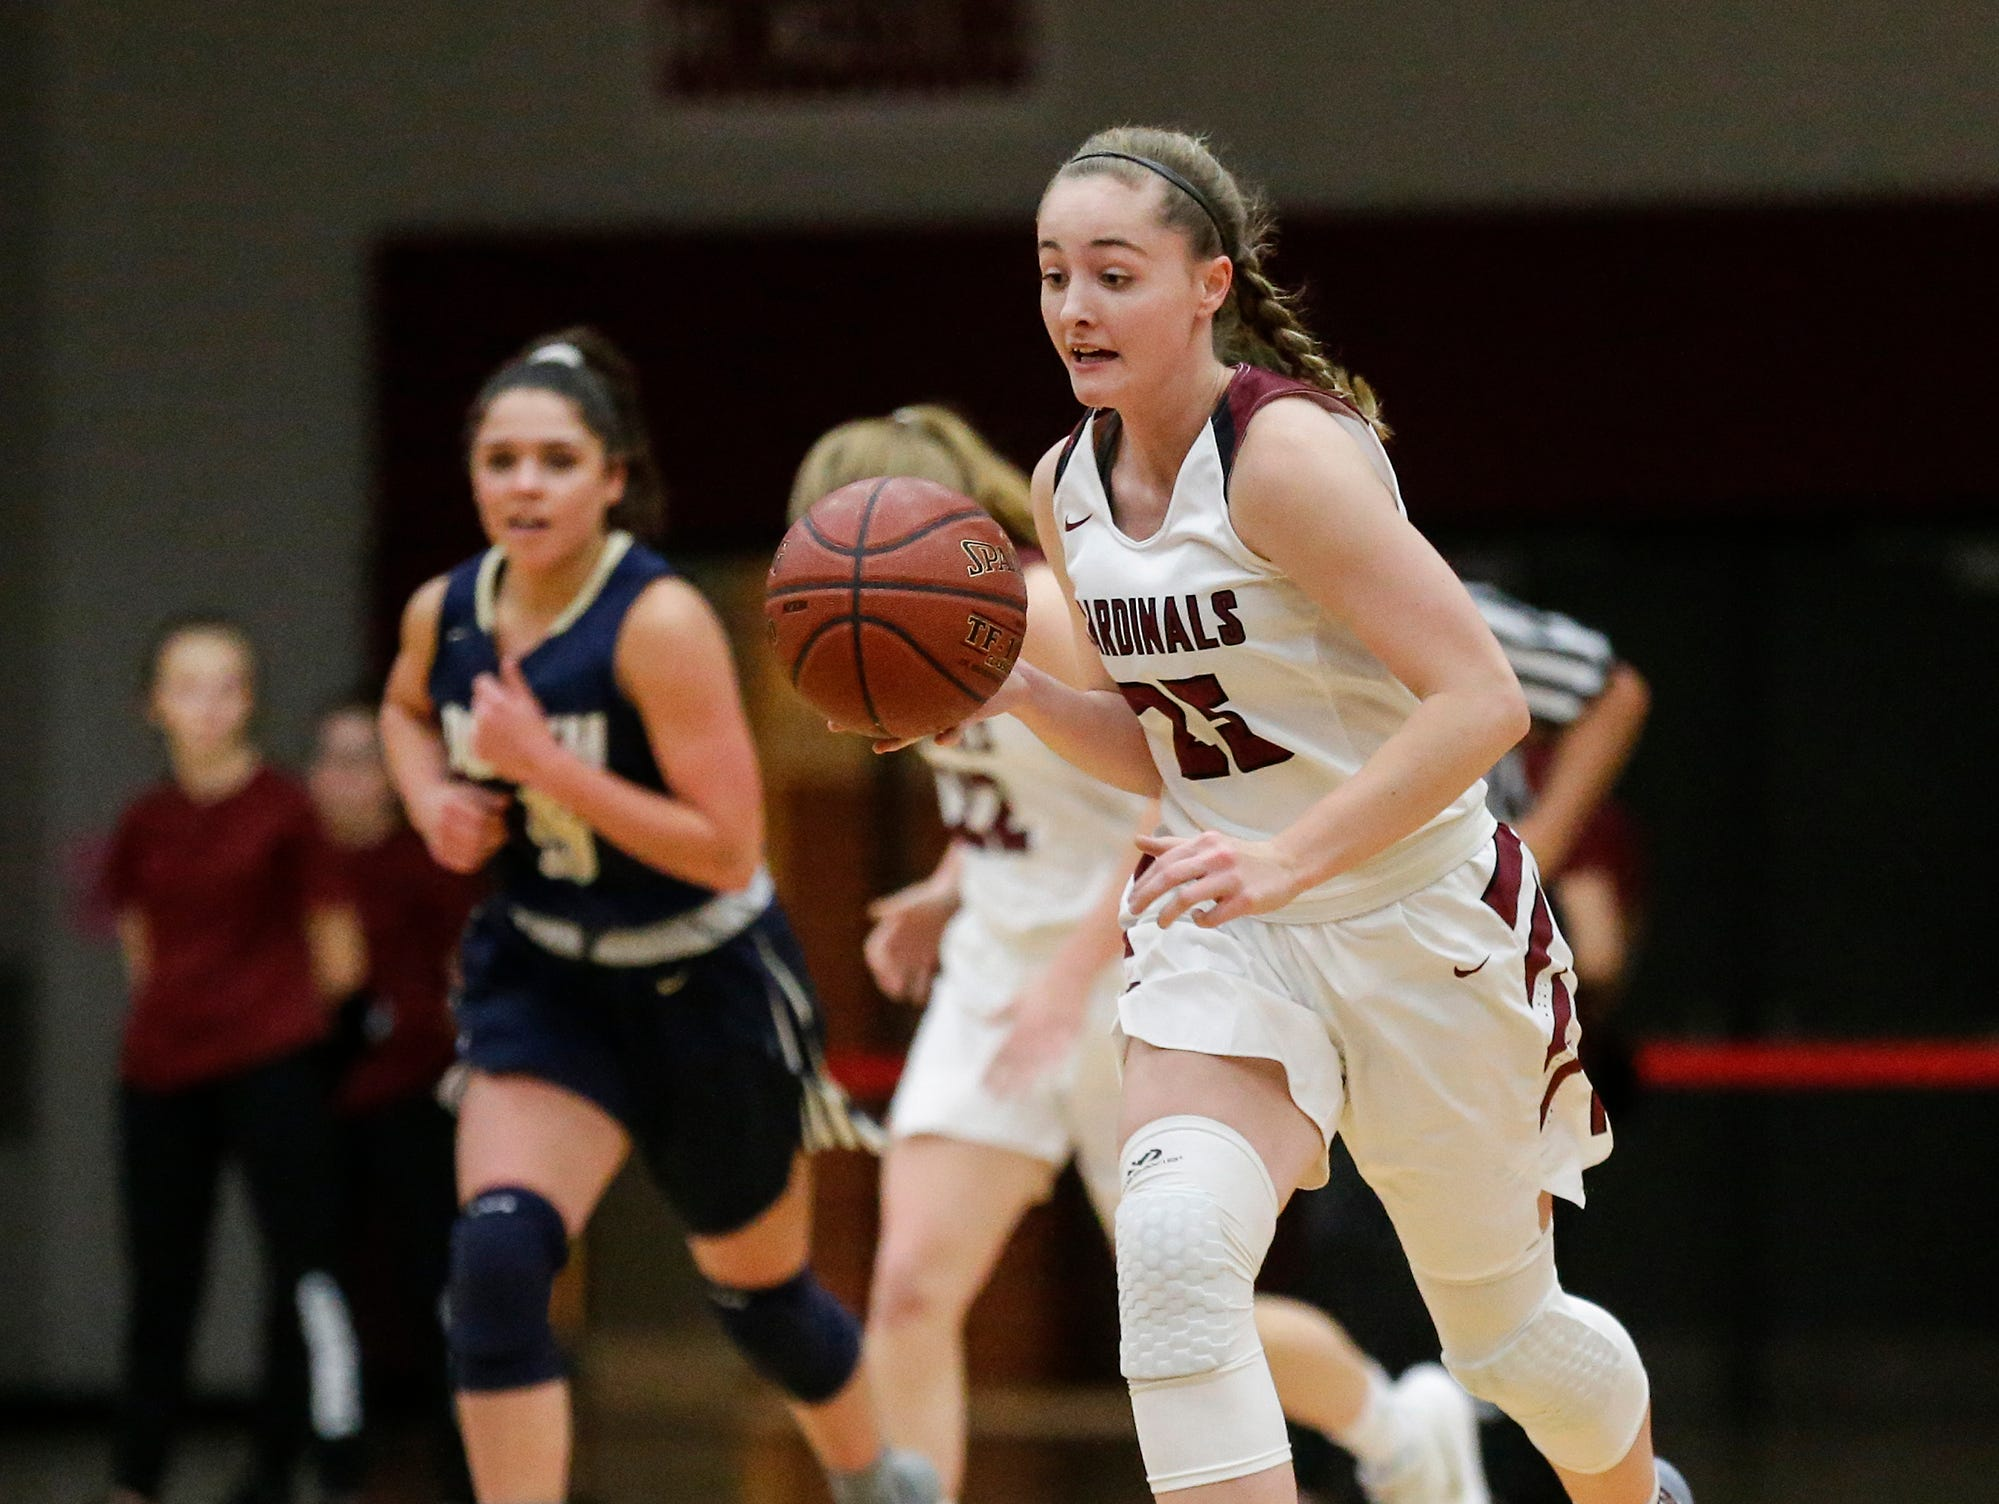 Fond du Lac High School girls basketball's Joslyn Herbeck moves down court with the ball against Appleton North High School during their game Tuesday, December 4, 2018 in Fond du Lac, Wisconsin. Doug Raflik/USA TODAY NETWORK-Wisconsin